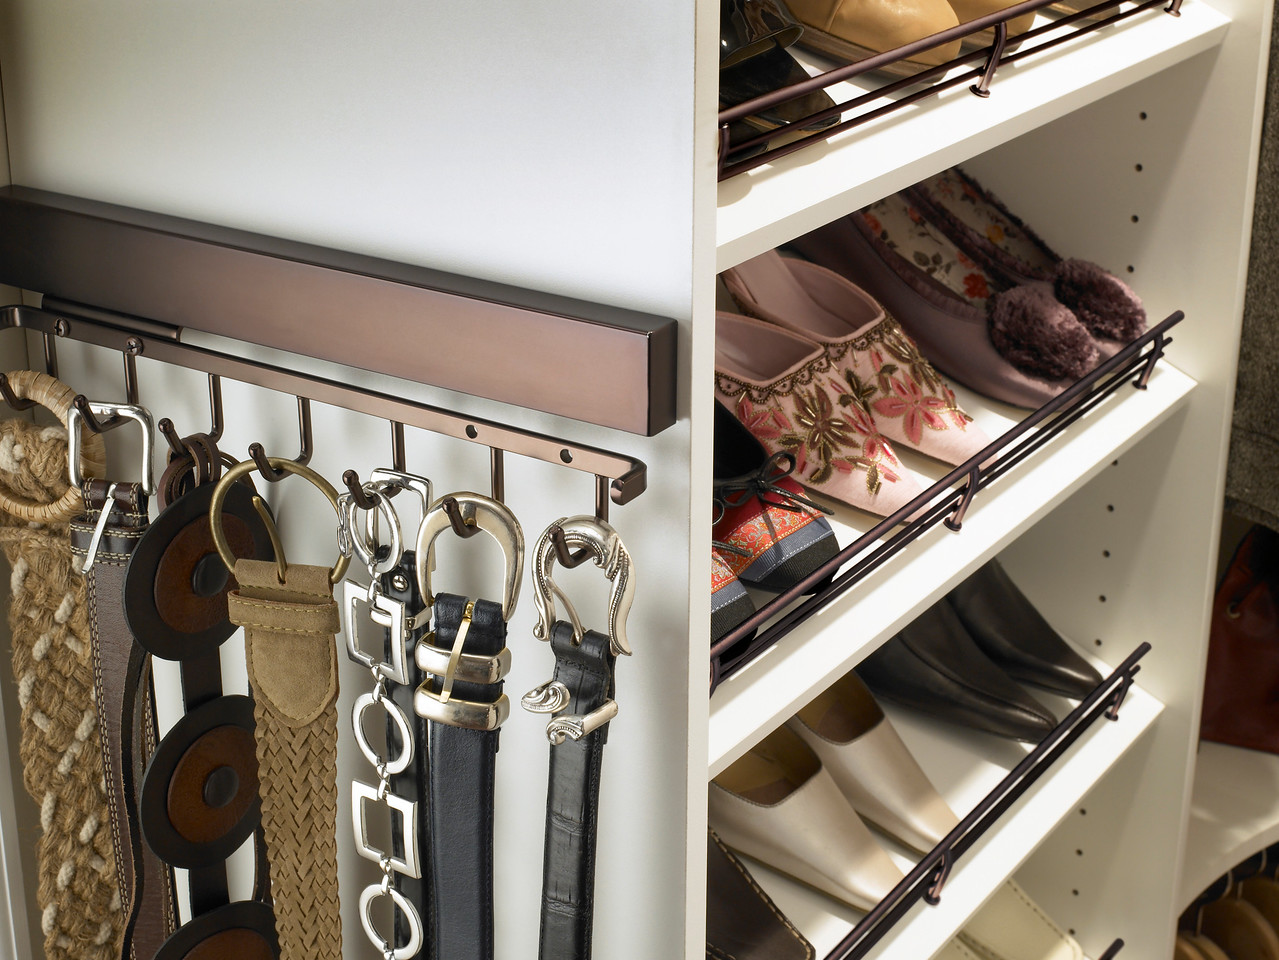 ClosetMaid MasterSuite Belt And Tie Rack Shoe Shelves With Oil Rubbed Bronze Hardware